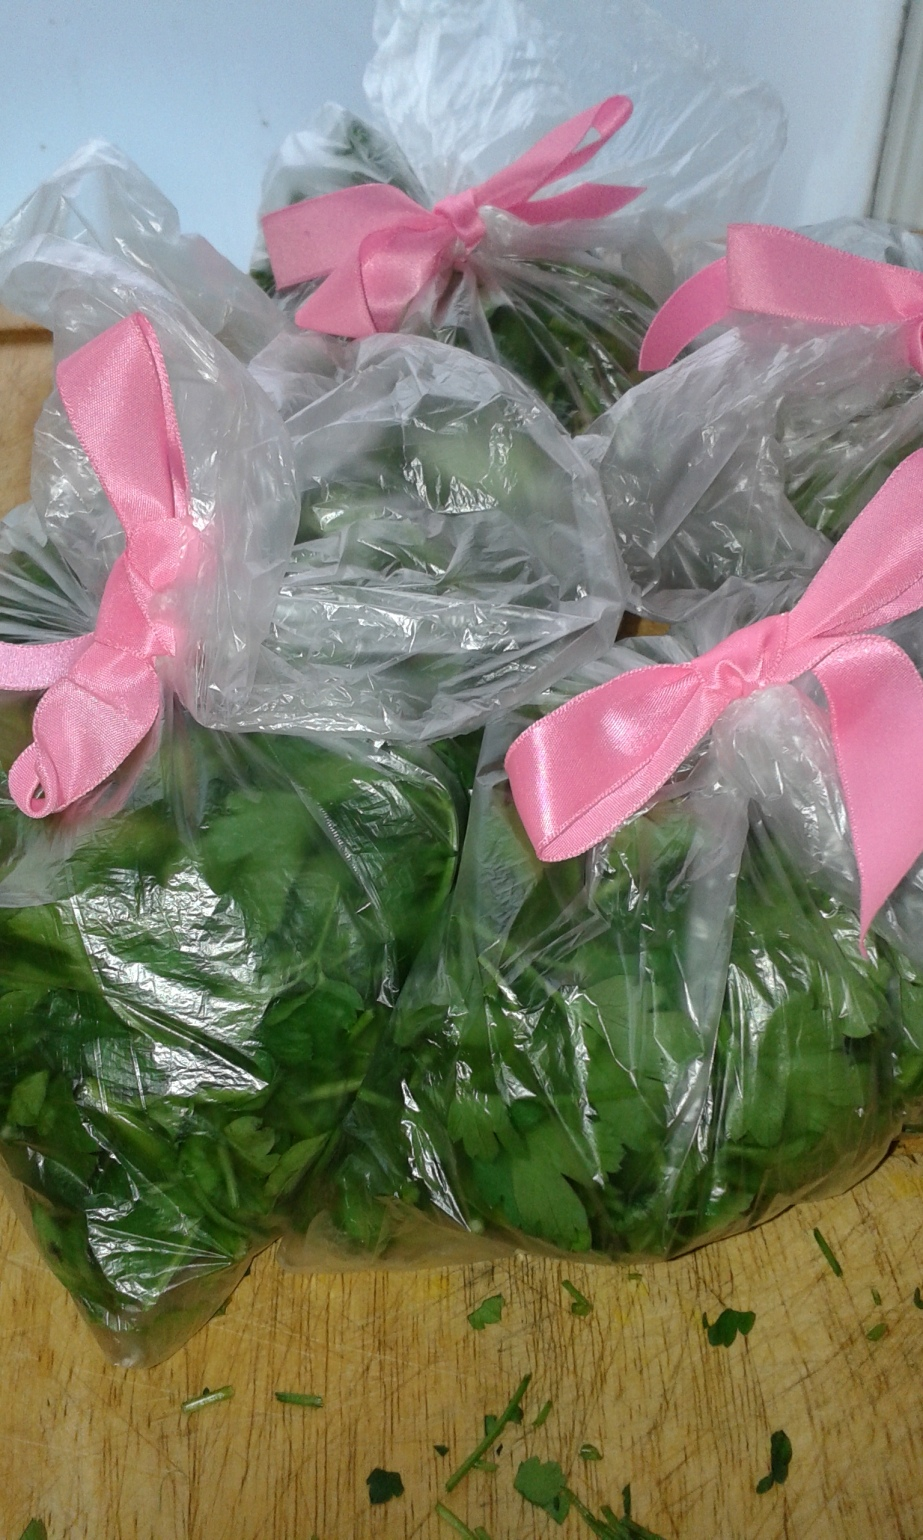 parsley bag 1 (7)